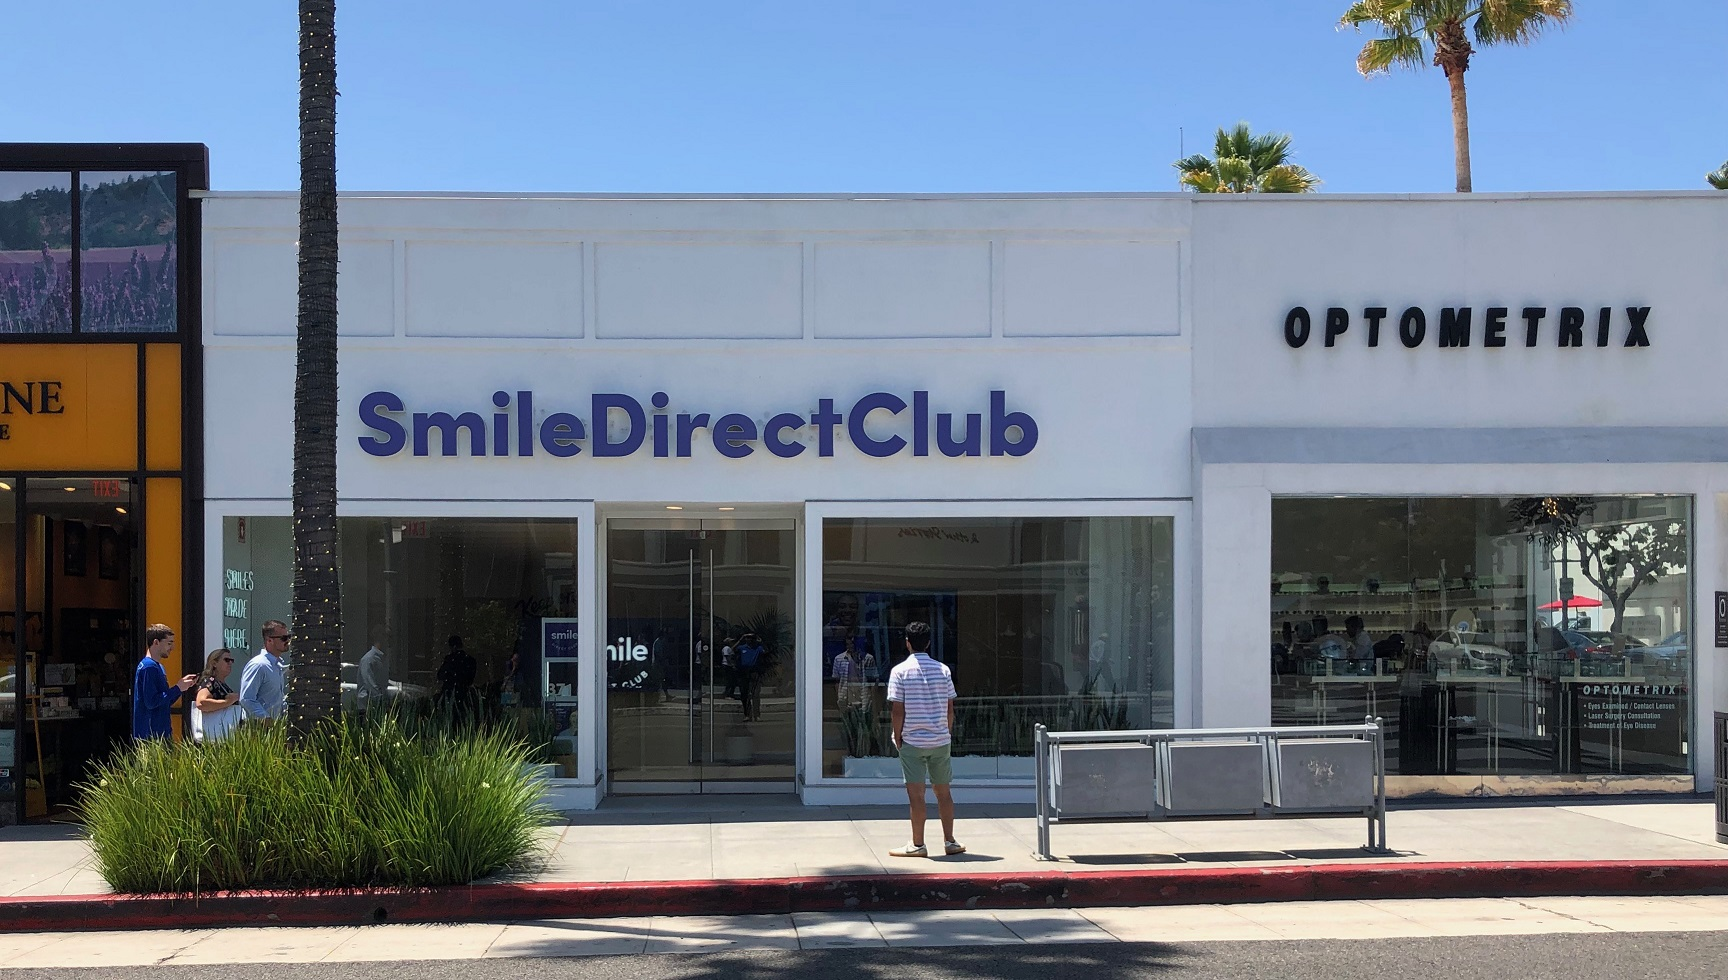 sign consultation, sign permit, sign consultant, sign makers near me, building permit signage, sign makers los angeles, sign permiting los angeles, channel lettering, channel letter company los angeles, smile direct club los angeles signage, Sign Fabricators Beverly Hills, Sign Permit Process Beverly Hills, Smile Direct Club Beverly Hills Sign, Business Sign Company, Exteior Signage Beverly Hills